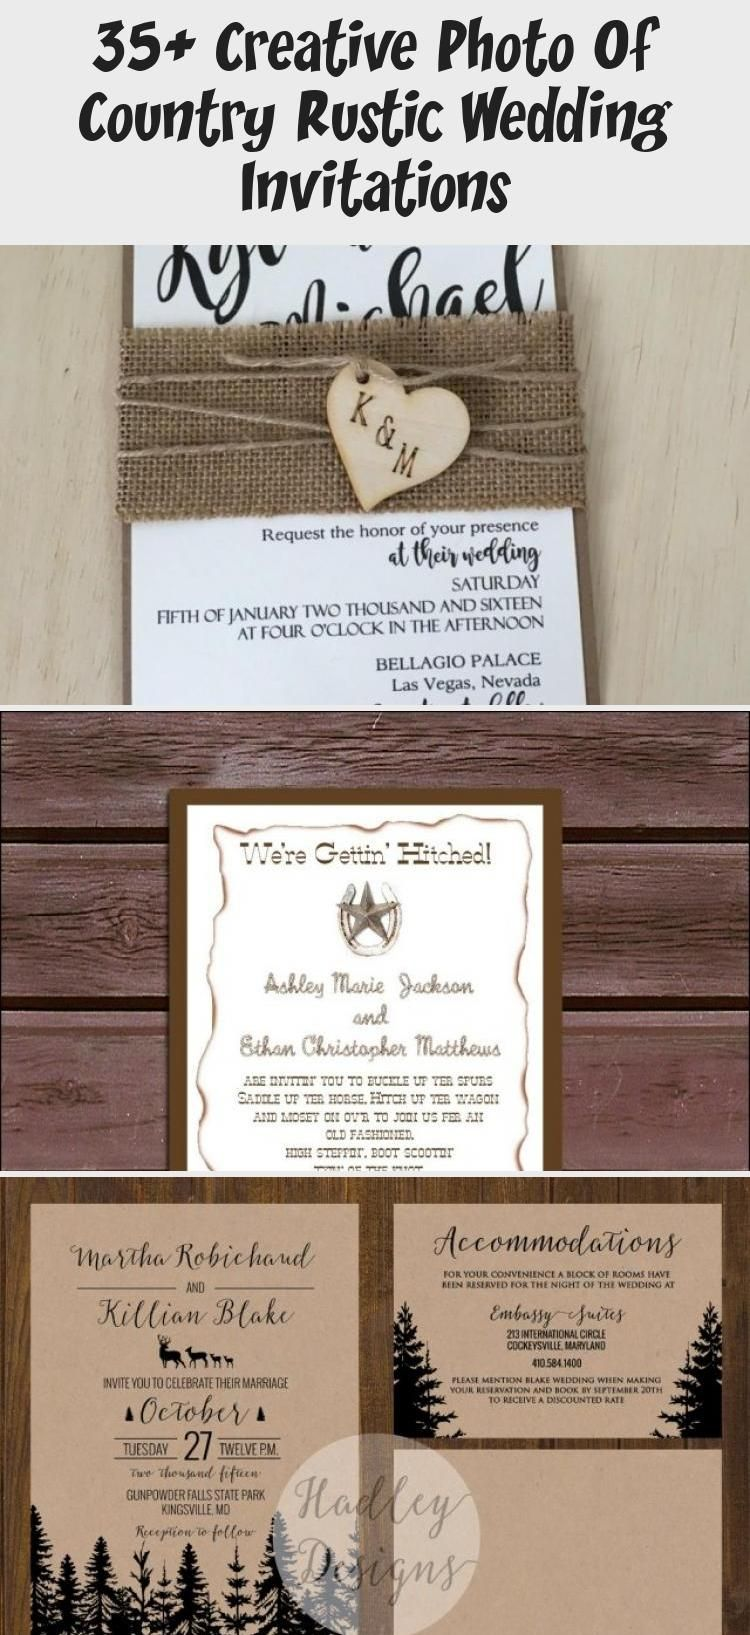 35 Creative Photo Of Country Rustic Wedding Invitations Wedding Invitations Rustic Rustic Wedding Invitations Burlap Wedding Invitations Diy Rustic